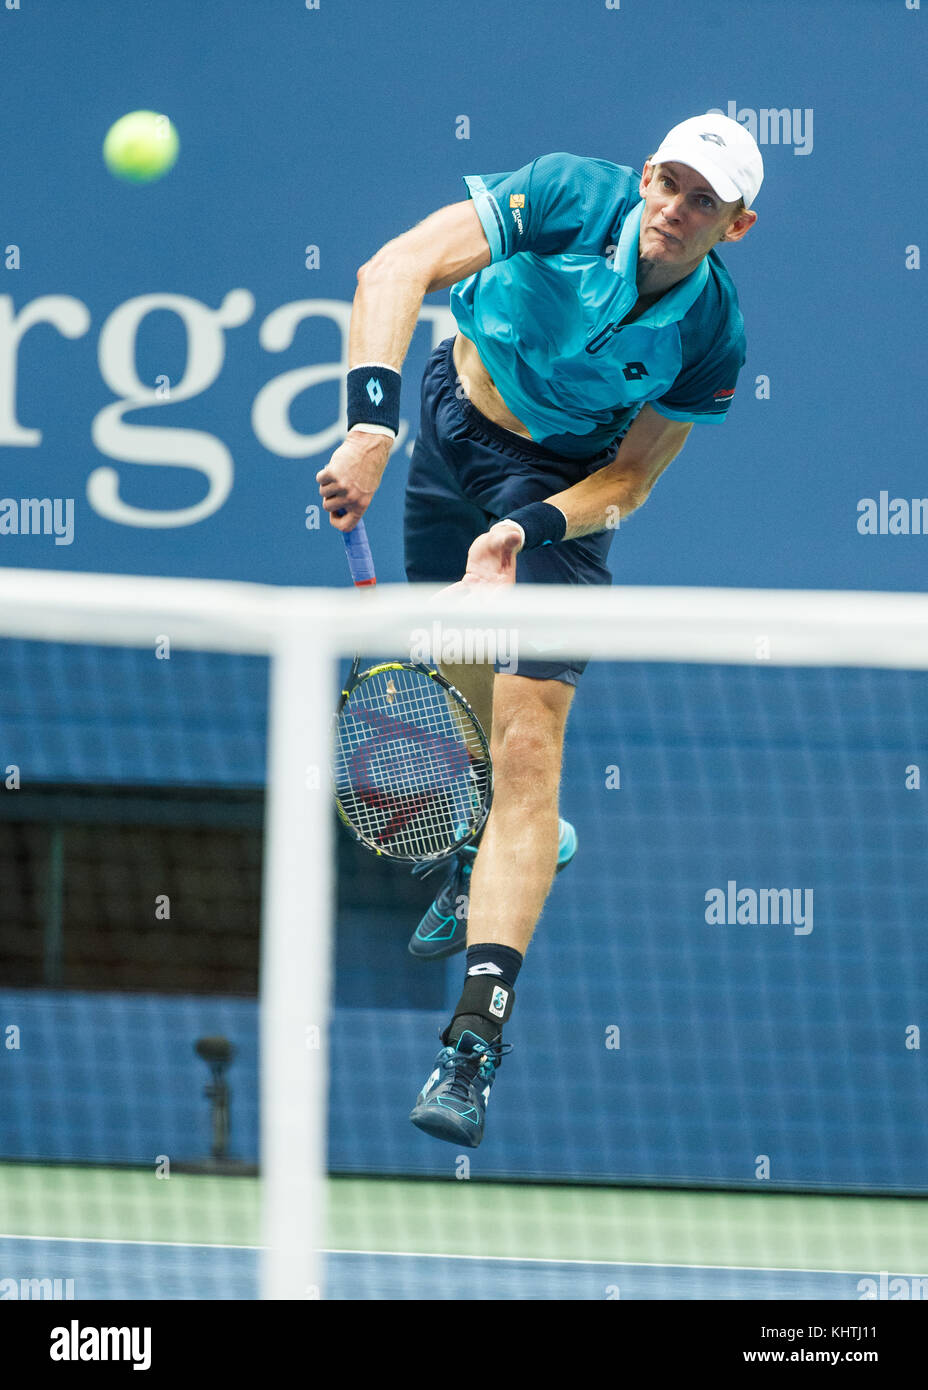 South African tennis player KEVIN ANDERSON (RSA) hitting a service shot  at US Open 2017 Tennis Championship, New - Stock Image